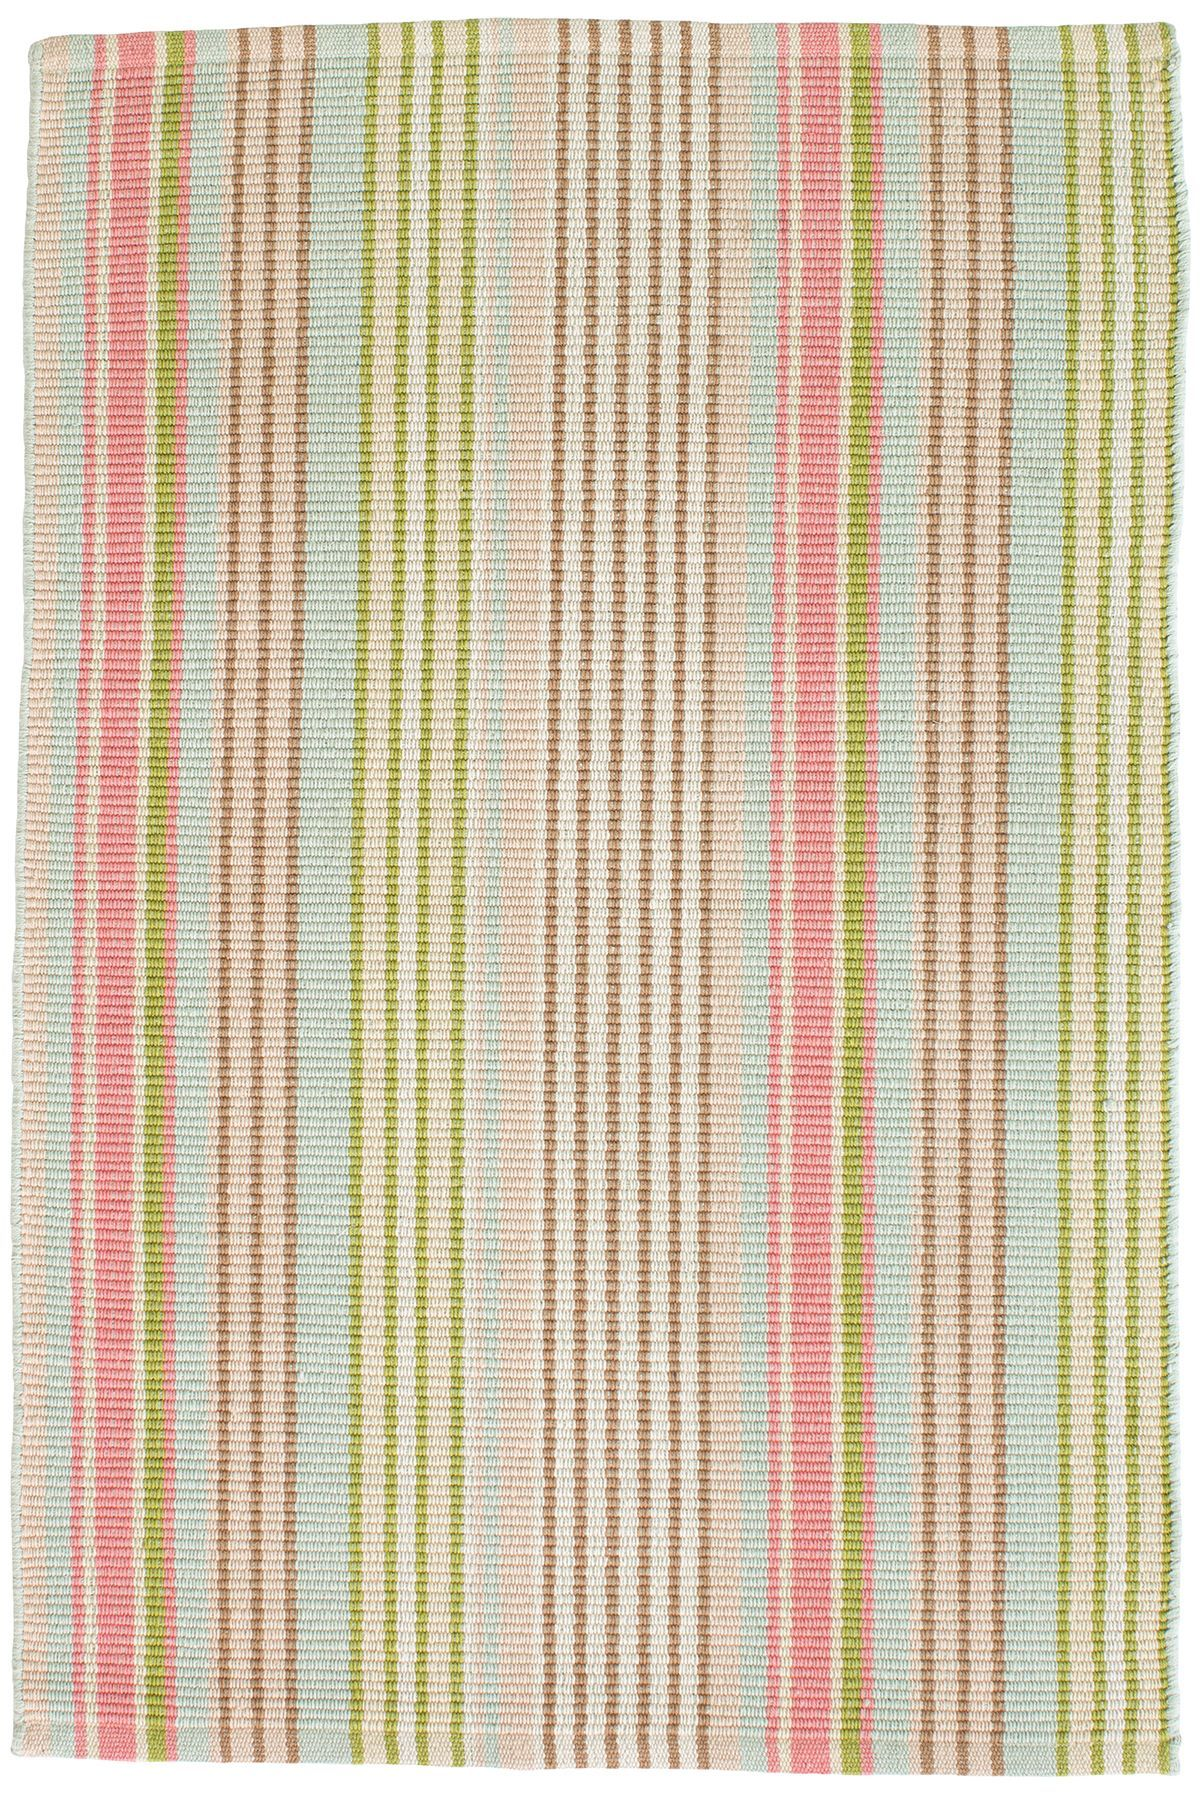 #Dashandalbert Ana Aqua Ticking Indooroutdoor Rug In Classic Ticking Stripes